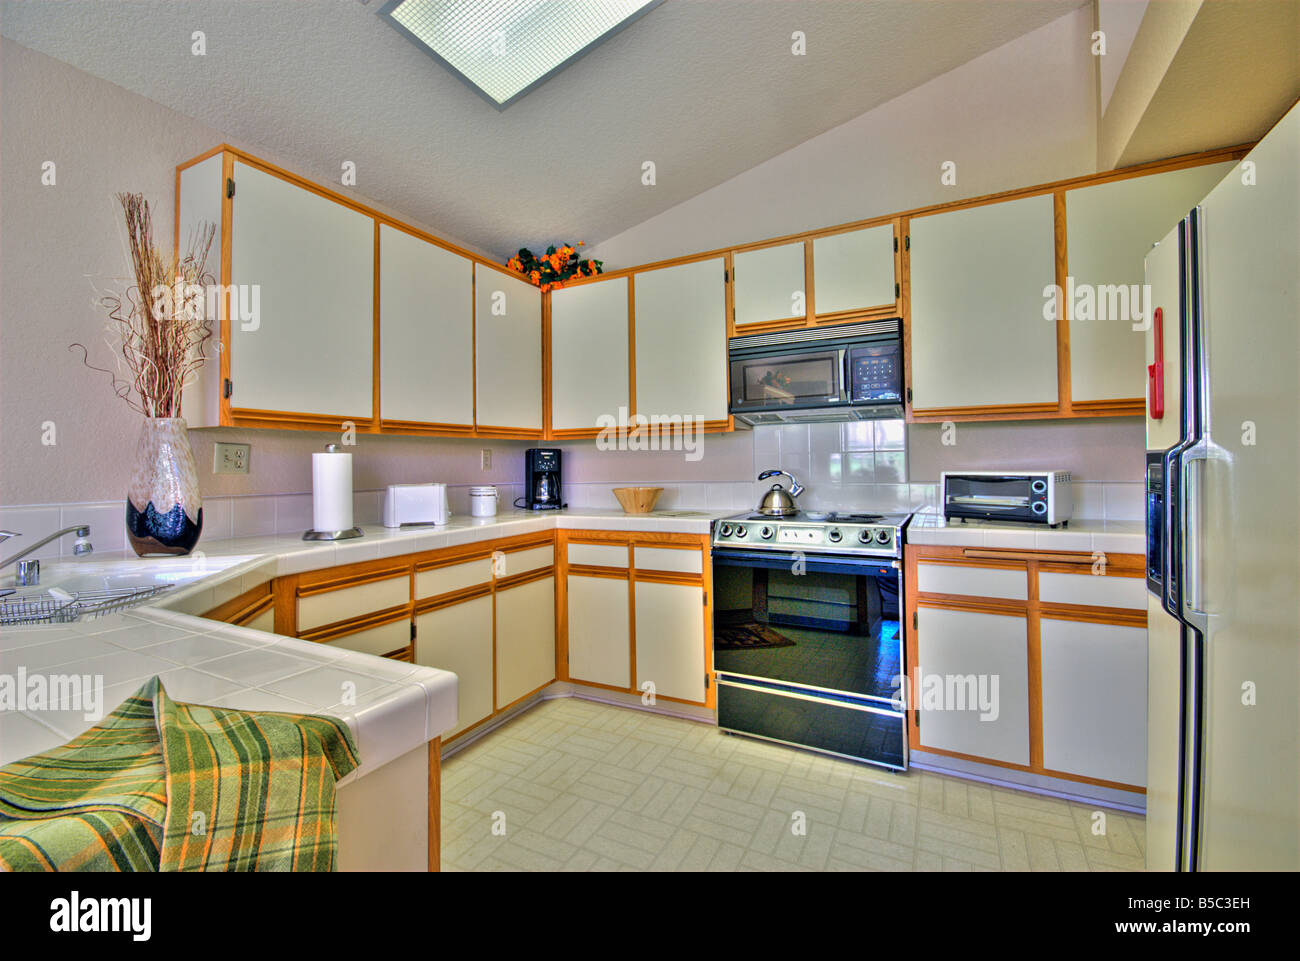 Oasis Country Club, Palm Desert Kitchen Interior White Wood Trim HDR  Lighting Panoramic House Home Appliances Horizontal